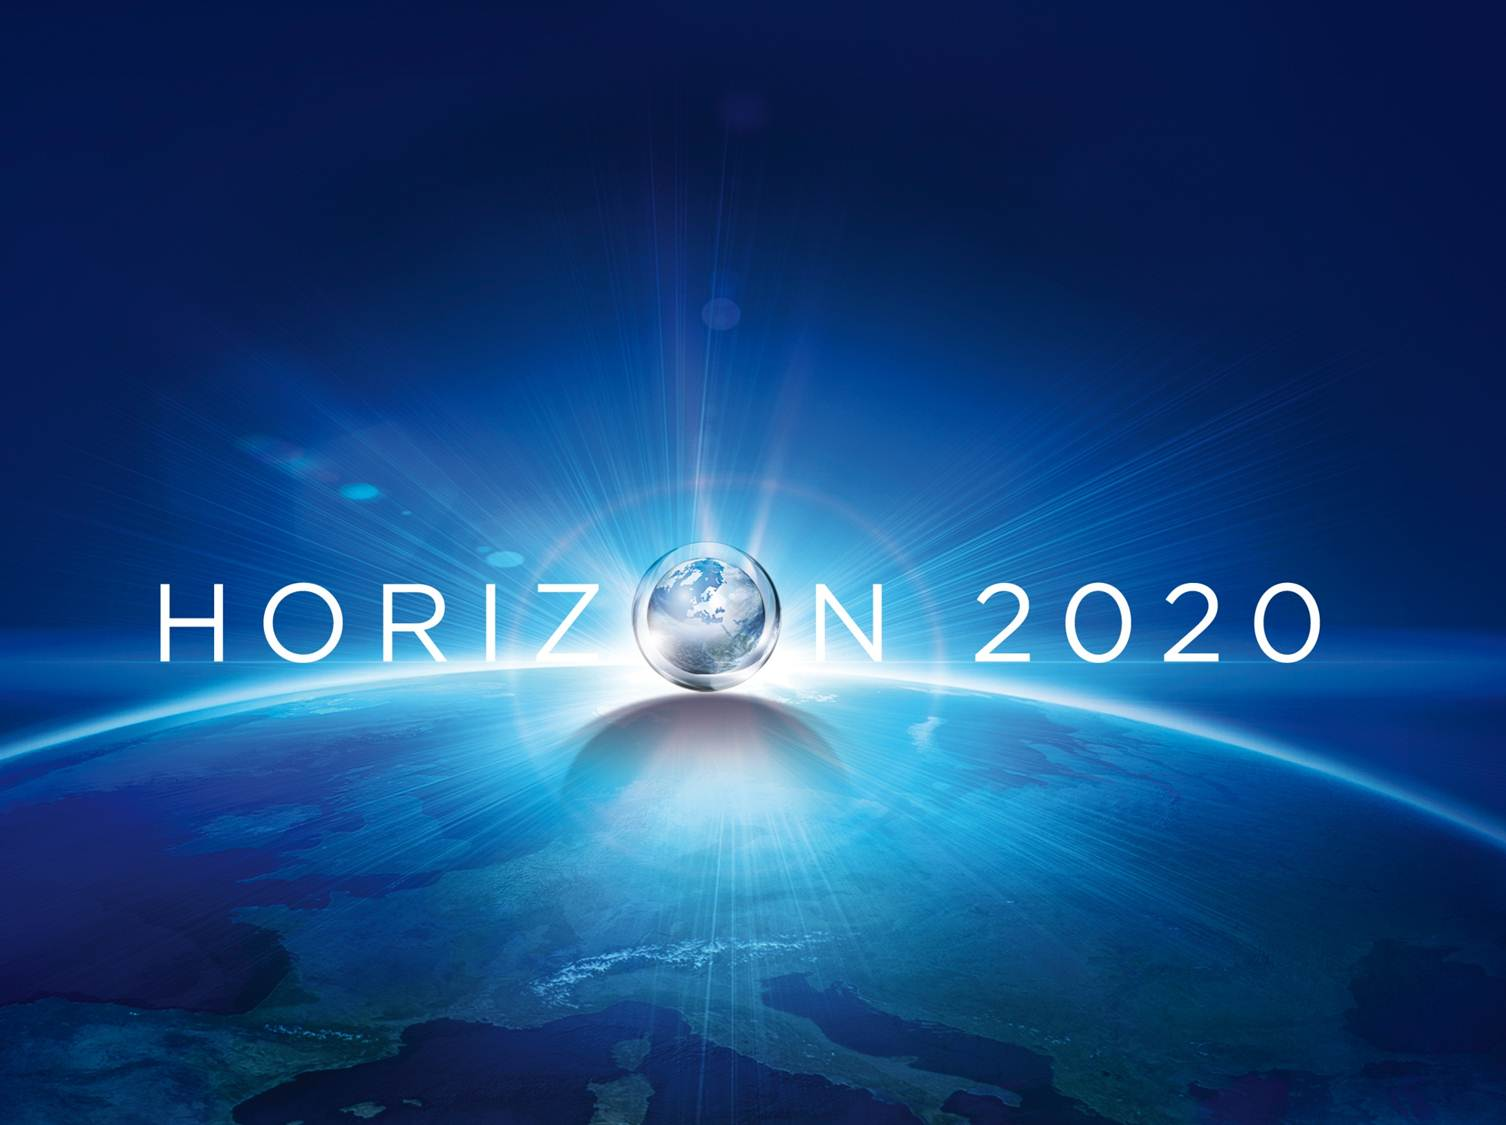 8-9 aprile - Marie Sklodowska Curie (MSCA) & ERC Advanced Grant in Horizon 2020